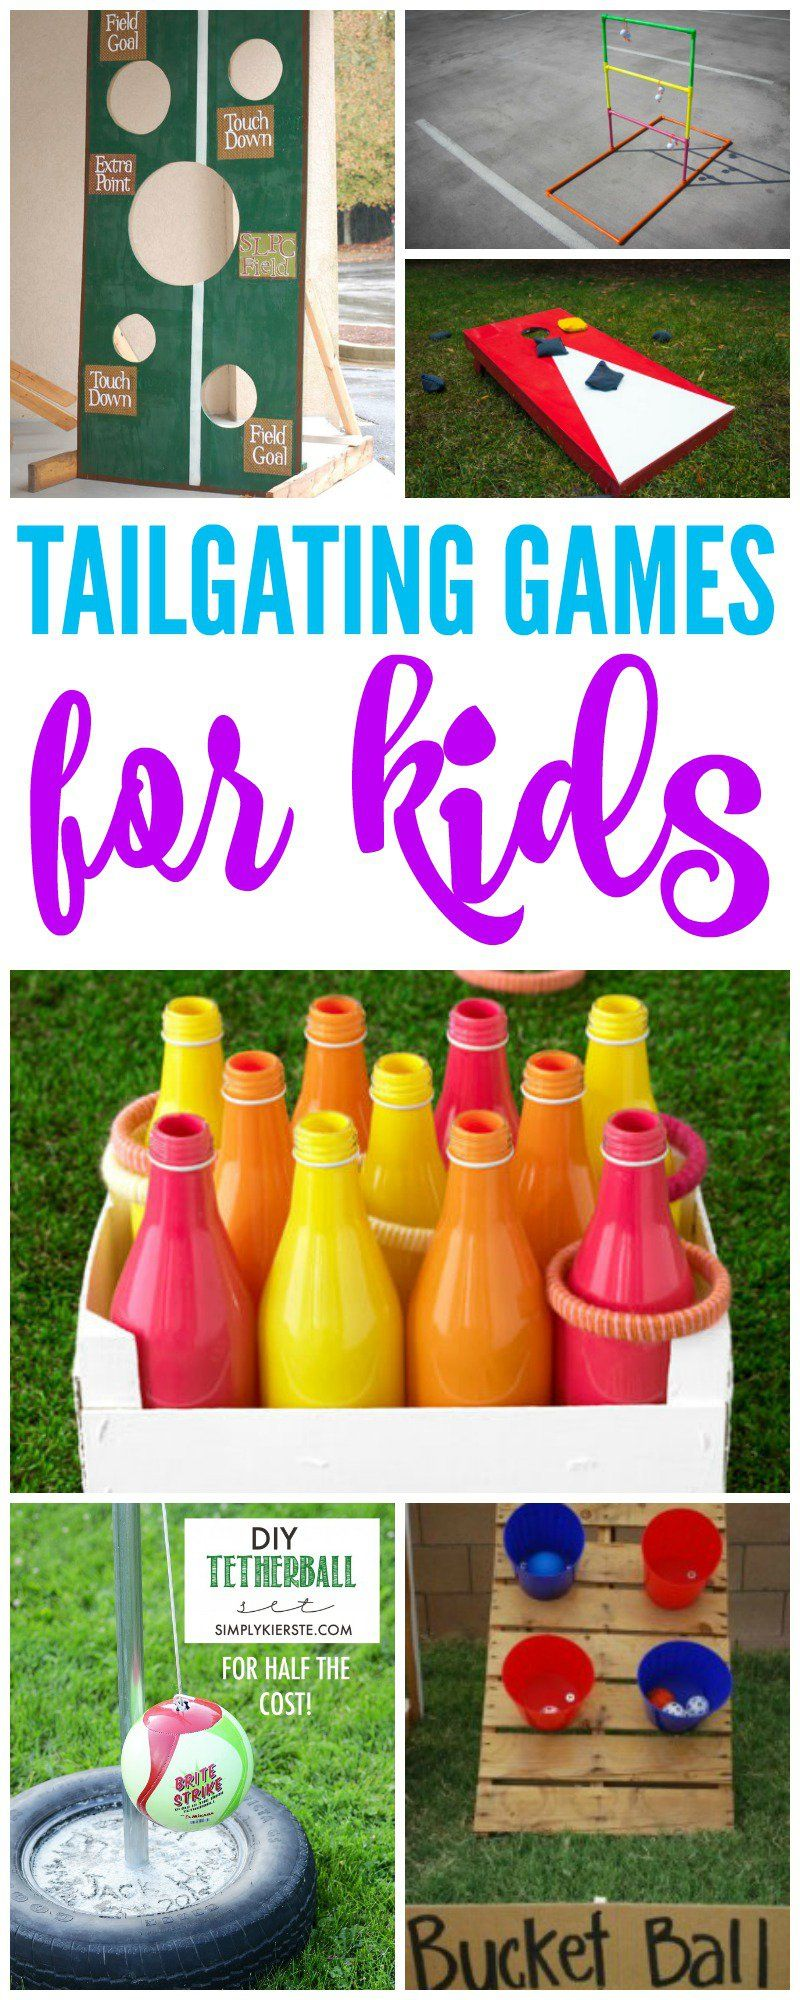 Tailgate Games for Kids! In the yard, before the game